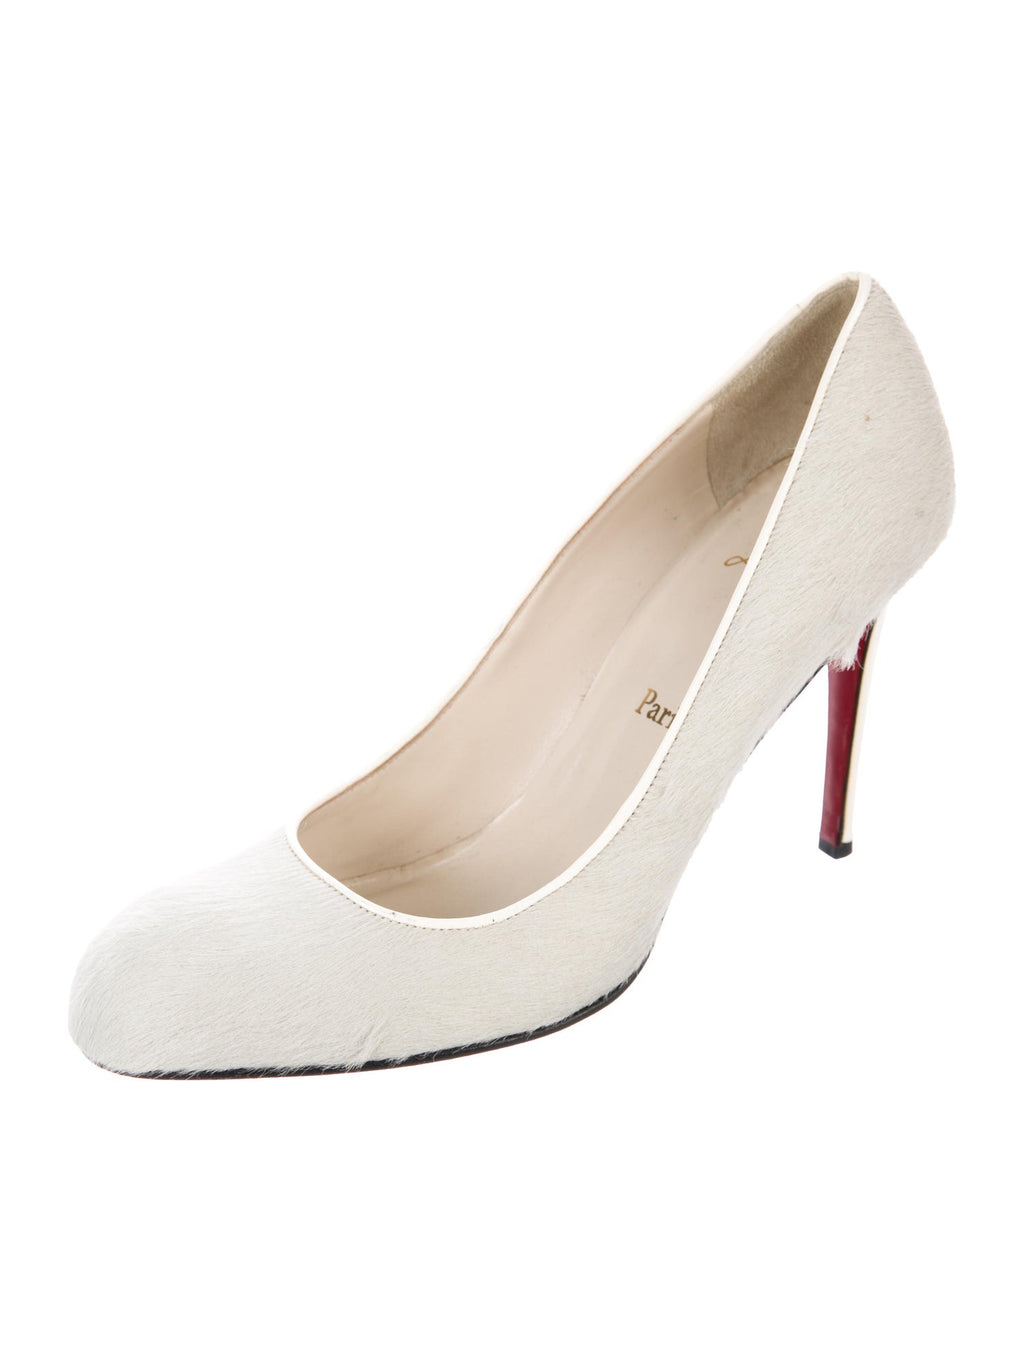 Christian Louboutin Pony-Hair Pumps